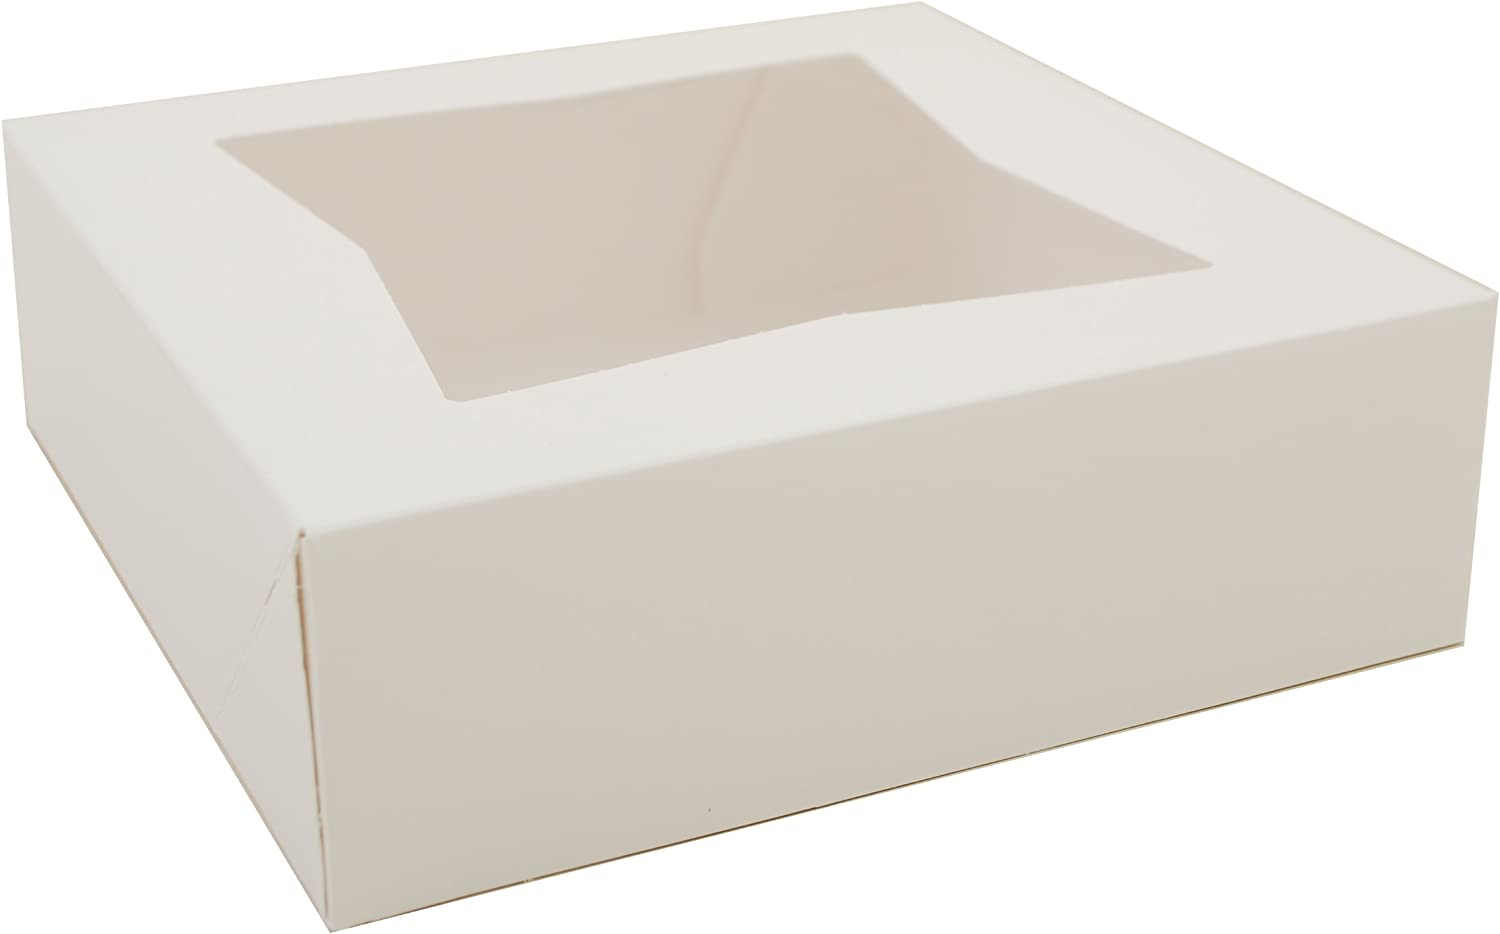 """Southern Champion Tray 24013 Paperboard White Window Bakery Box, 8"""" Length x 8"""" Width x 2-1/2"""" Height (Case of 200)"""